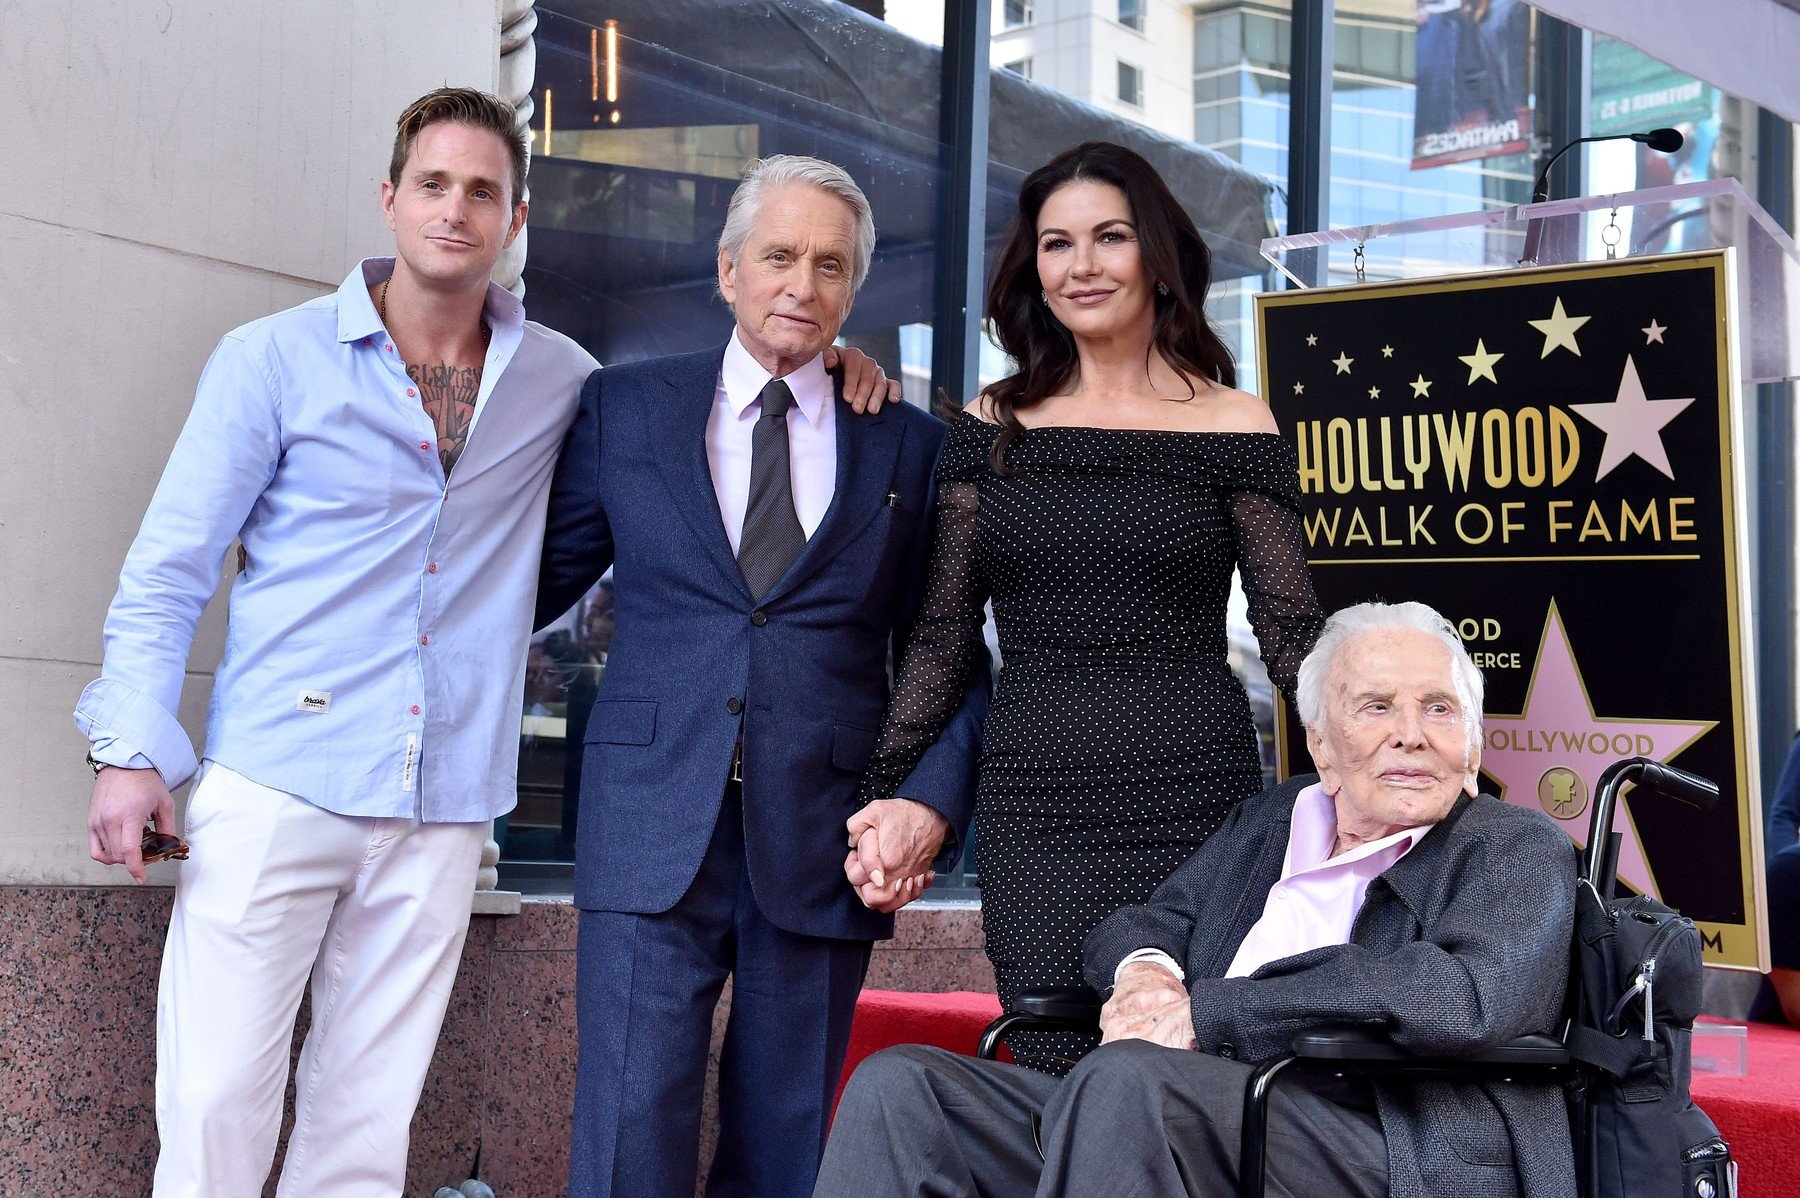 Michael Douglas honored with star on the Hollywood Walk of Fame. Hollywood, California. 06 Nov 2018, Image: 394431715, License: Rights-managed, Restrictions: World Rights, Model Release: no, Credit line: Profimedia, Mega Agency